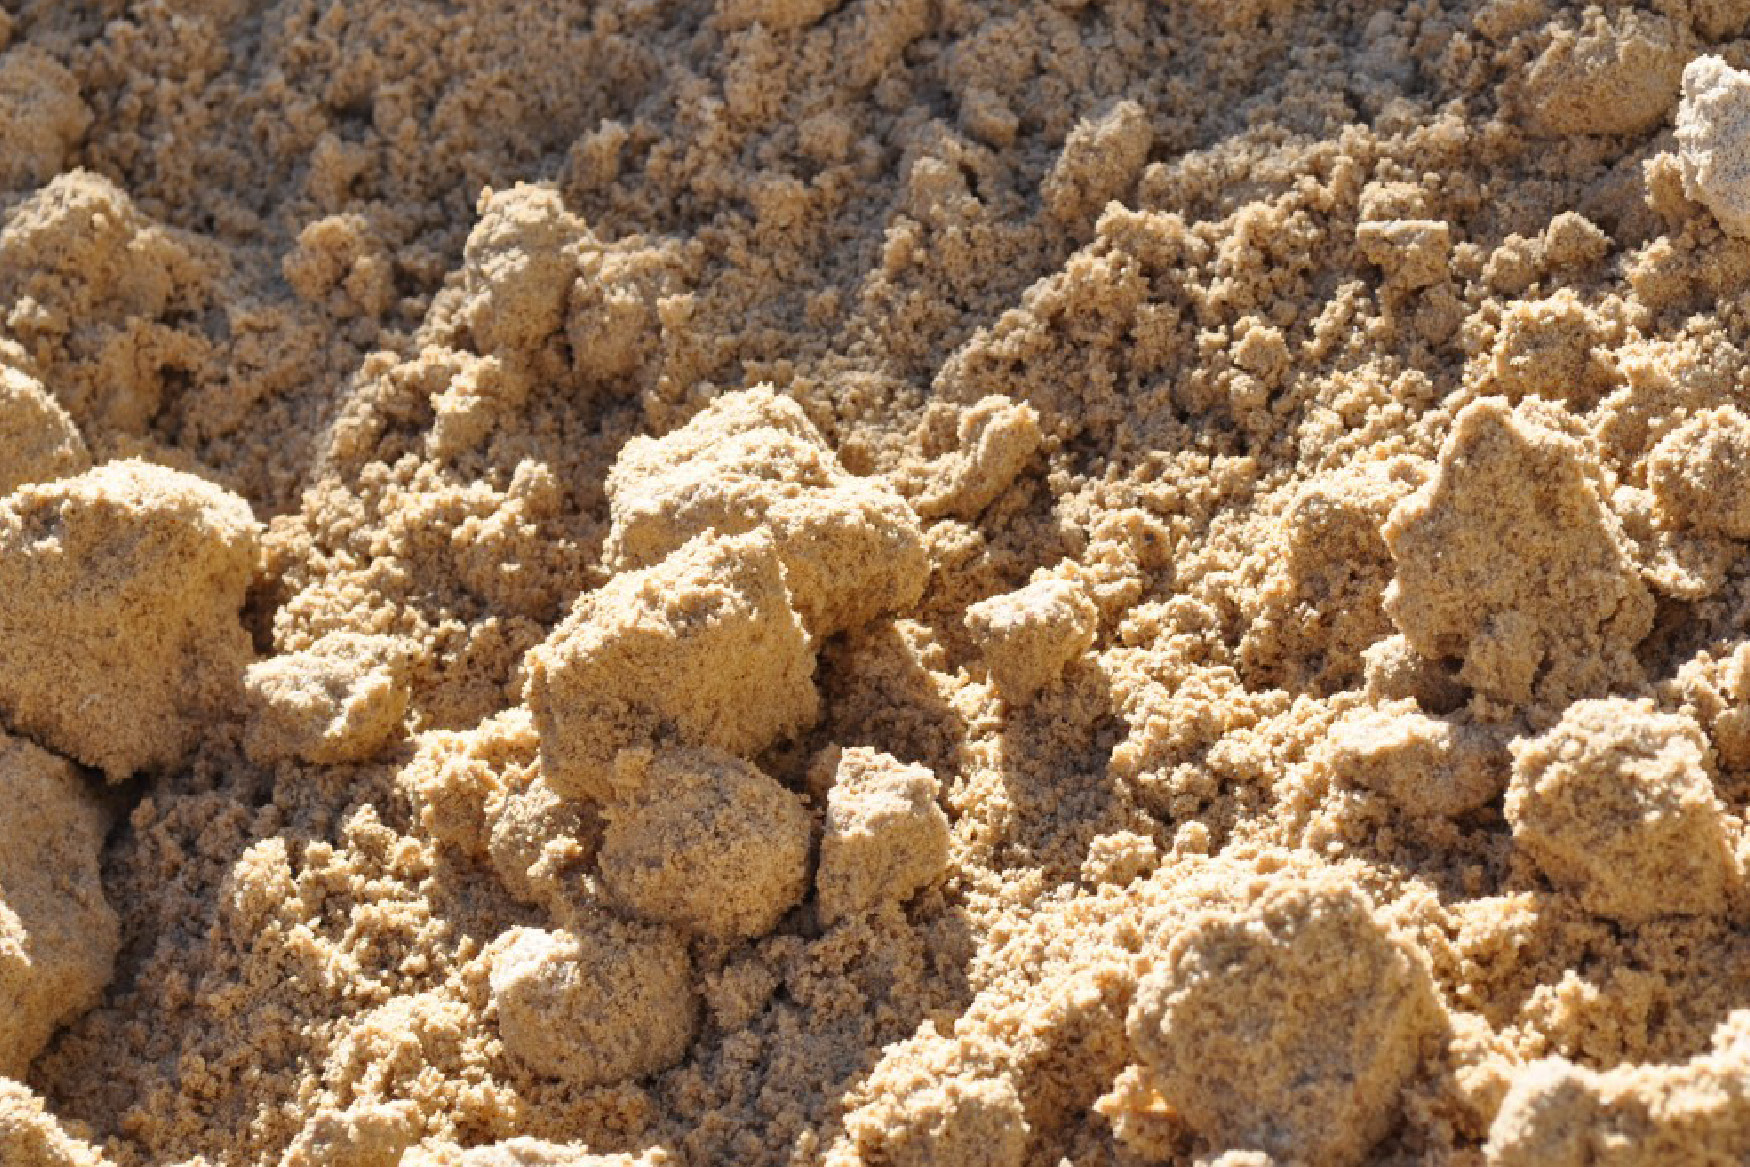 preview - clay balls in sand